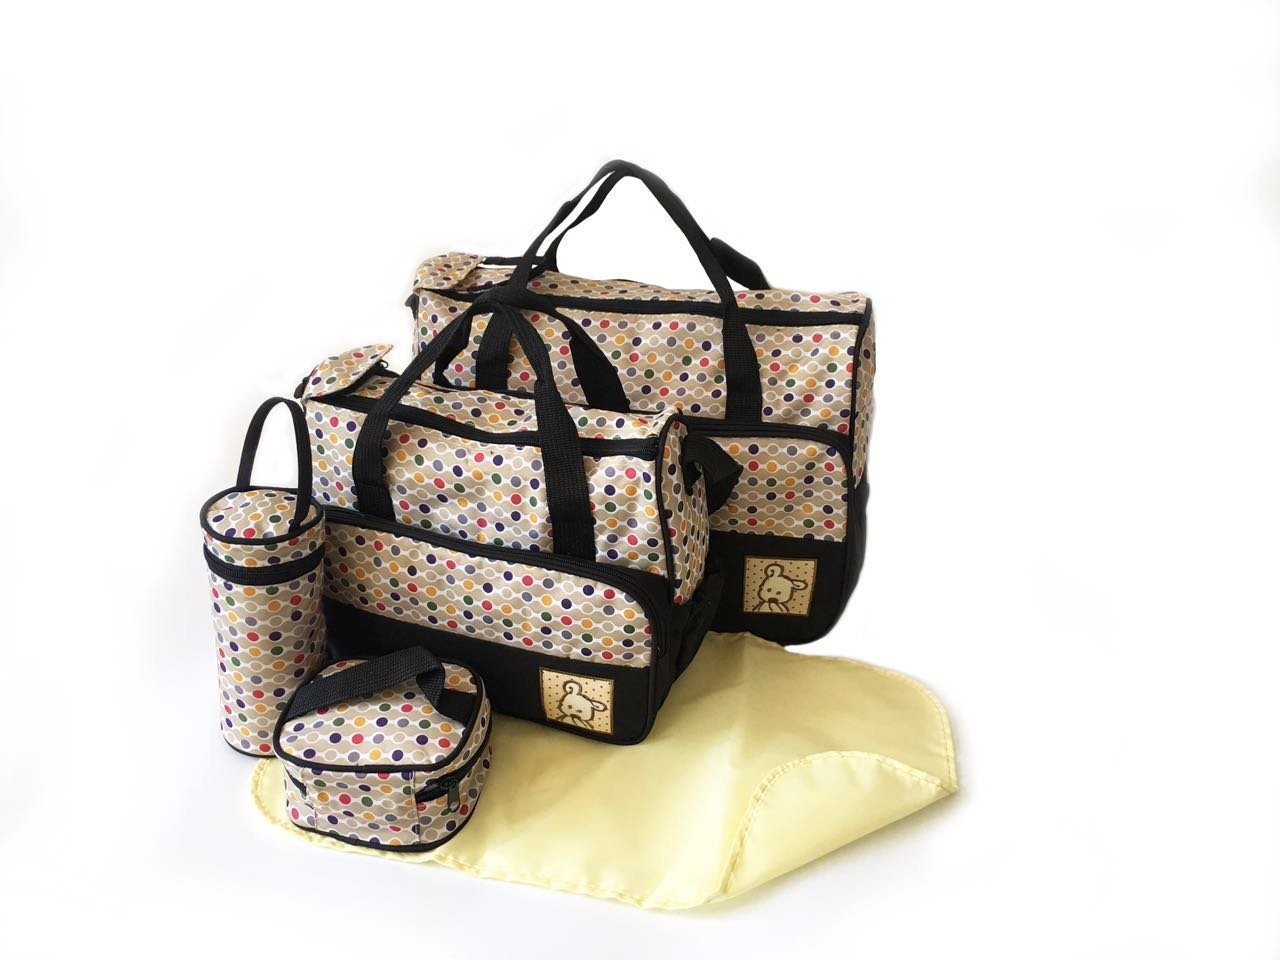 5pcs POLKA DOT Baby Nappy Changing Bags Set Diaper Hospital Bag (5pcs Black Polka Dot Bags) just4baby